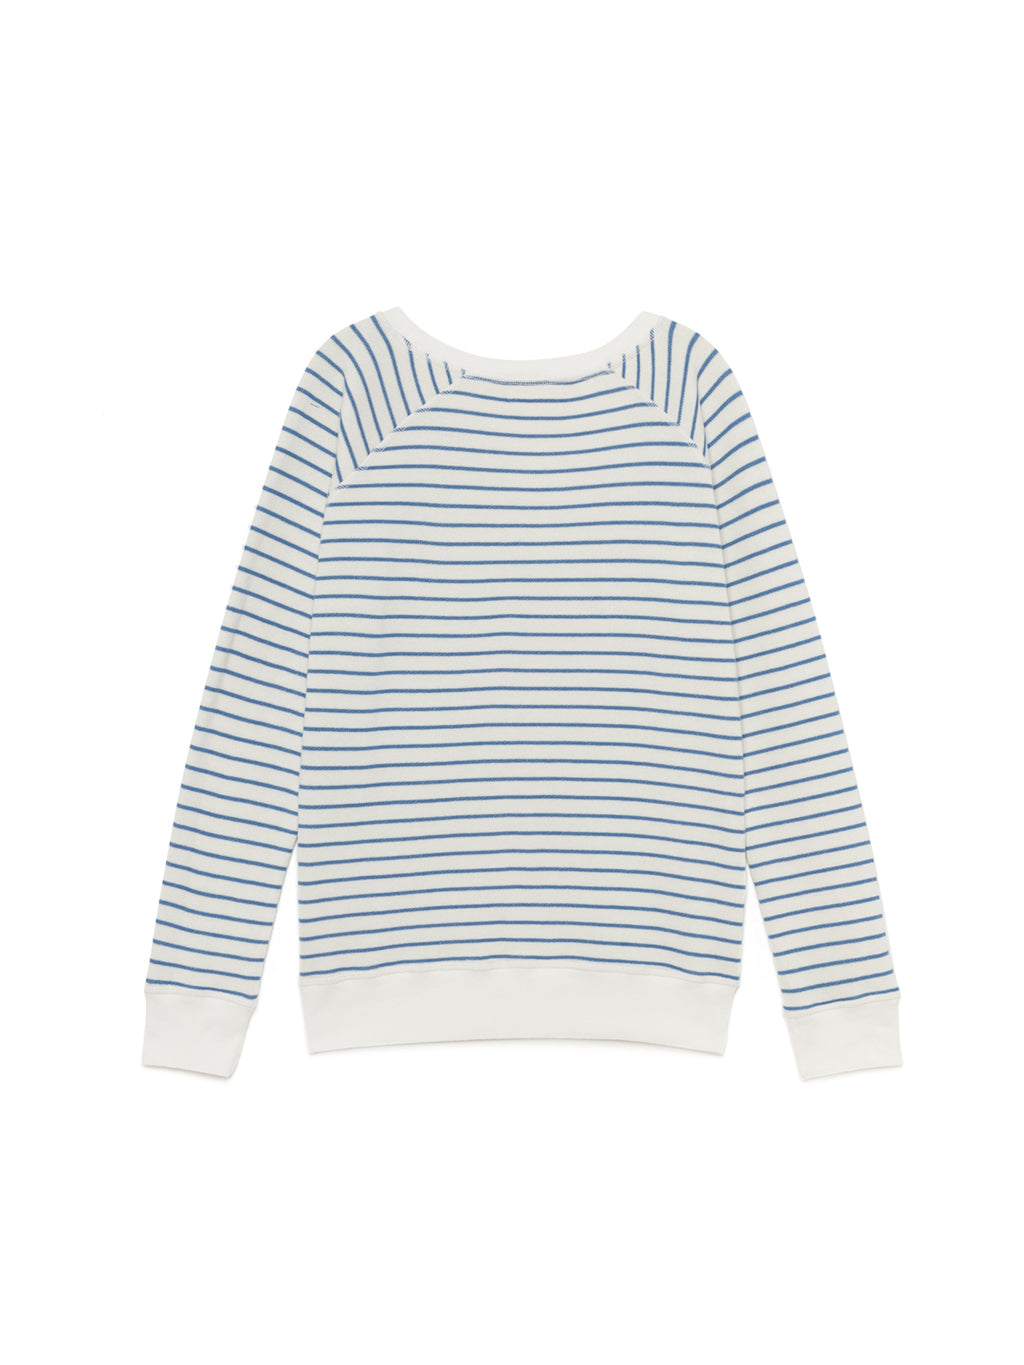 TWOTHIRDS Womens Sweat: Corfu - White back